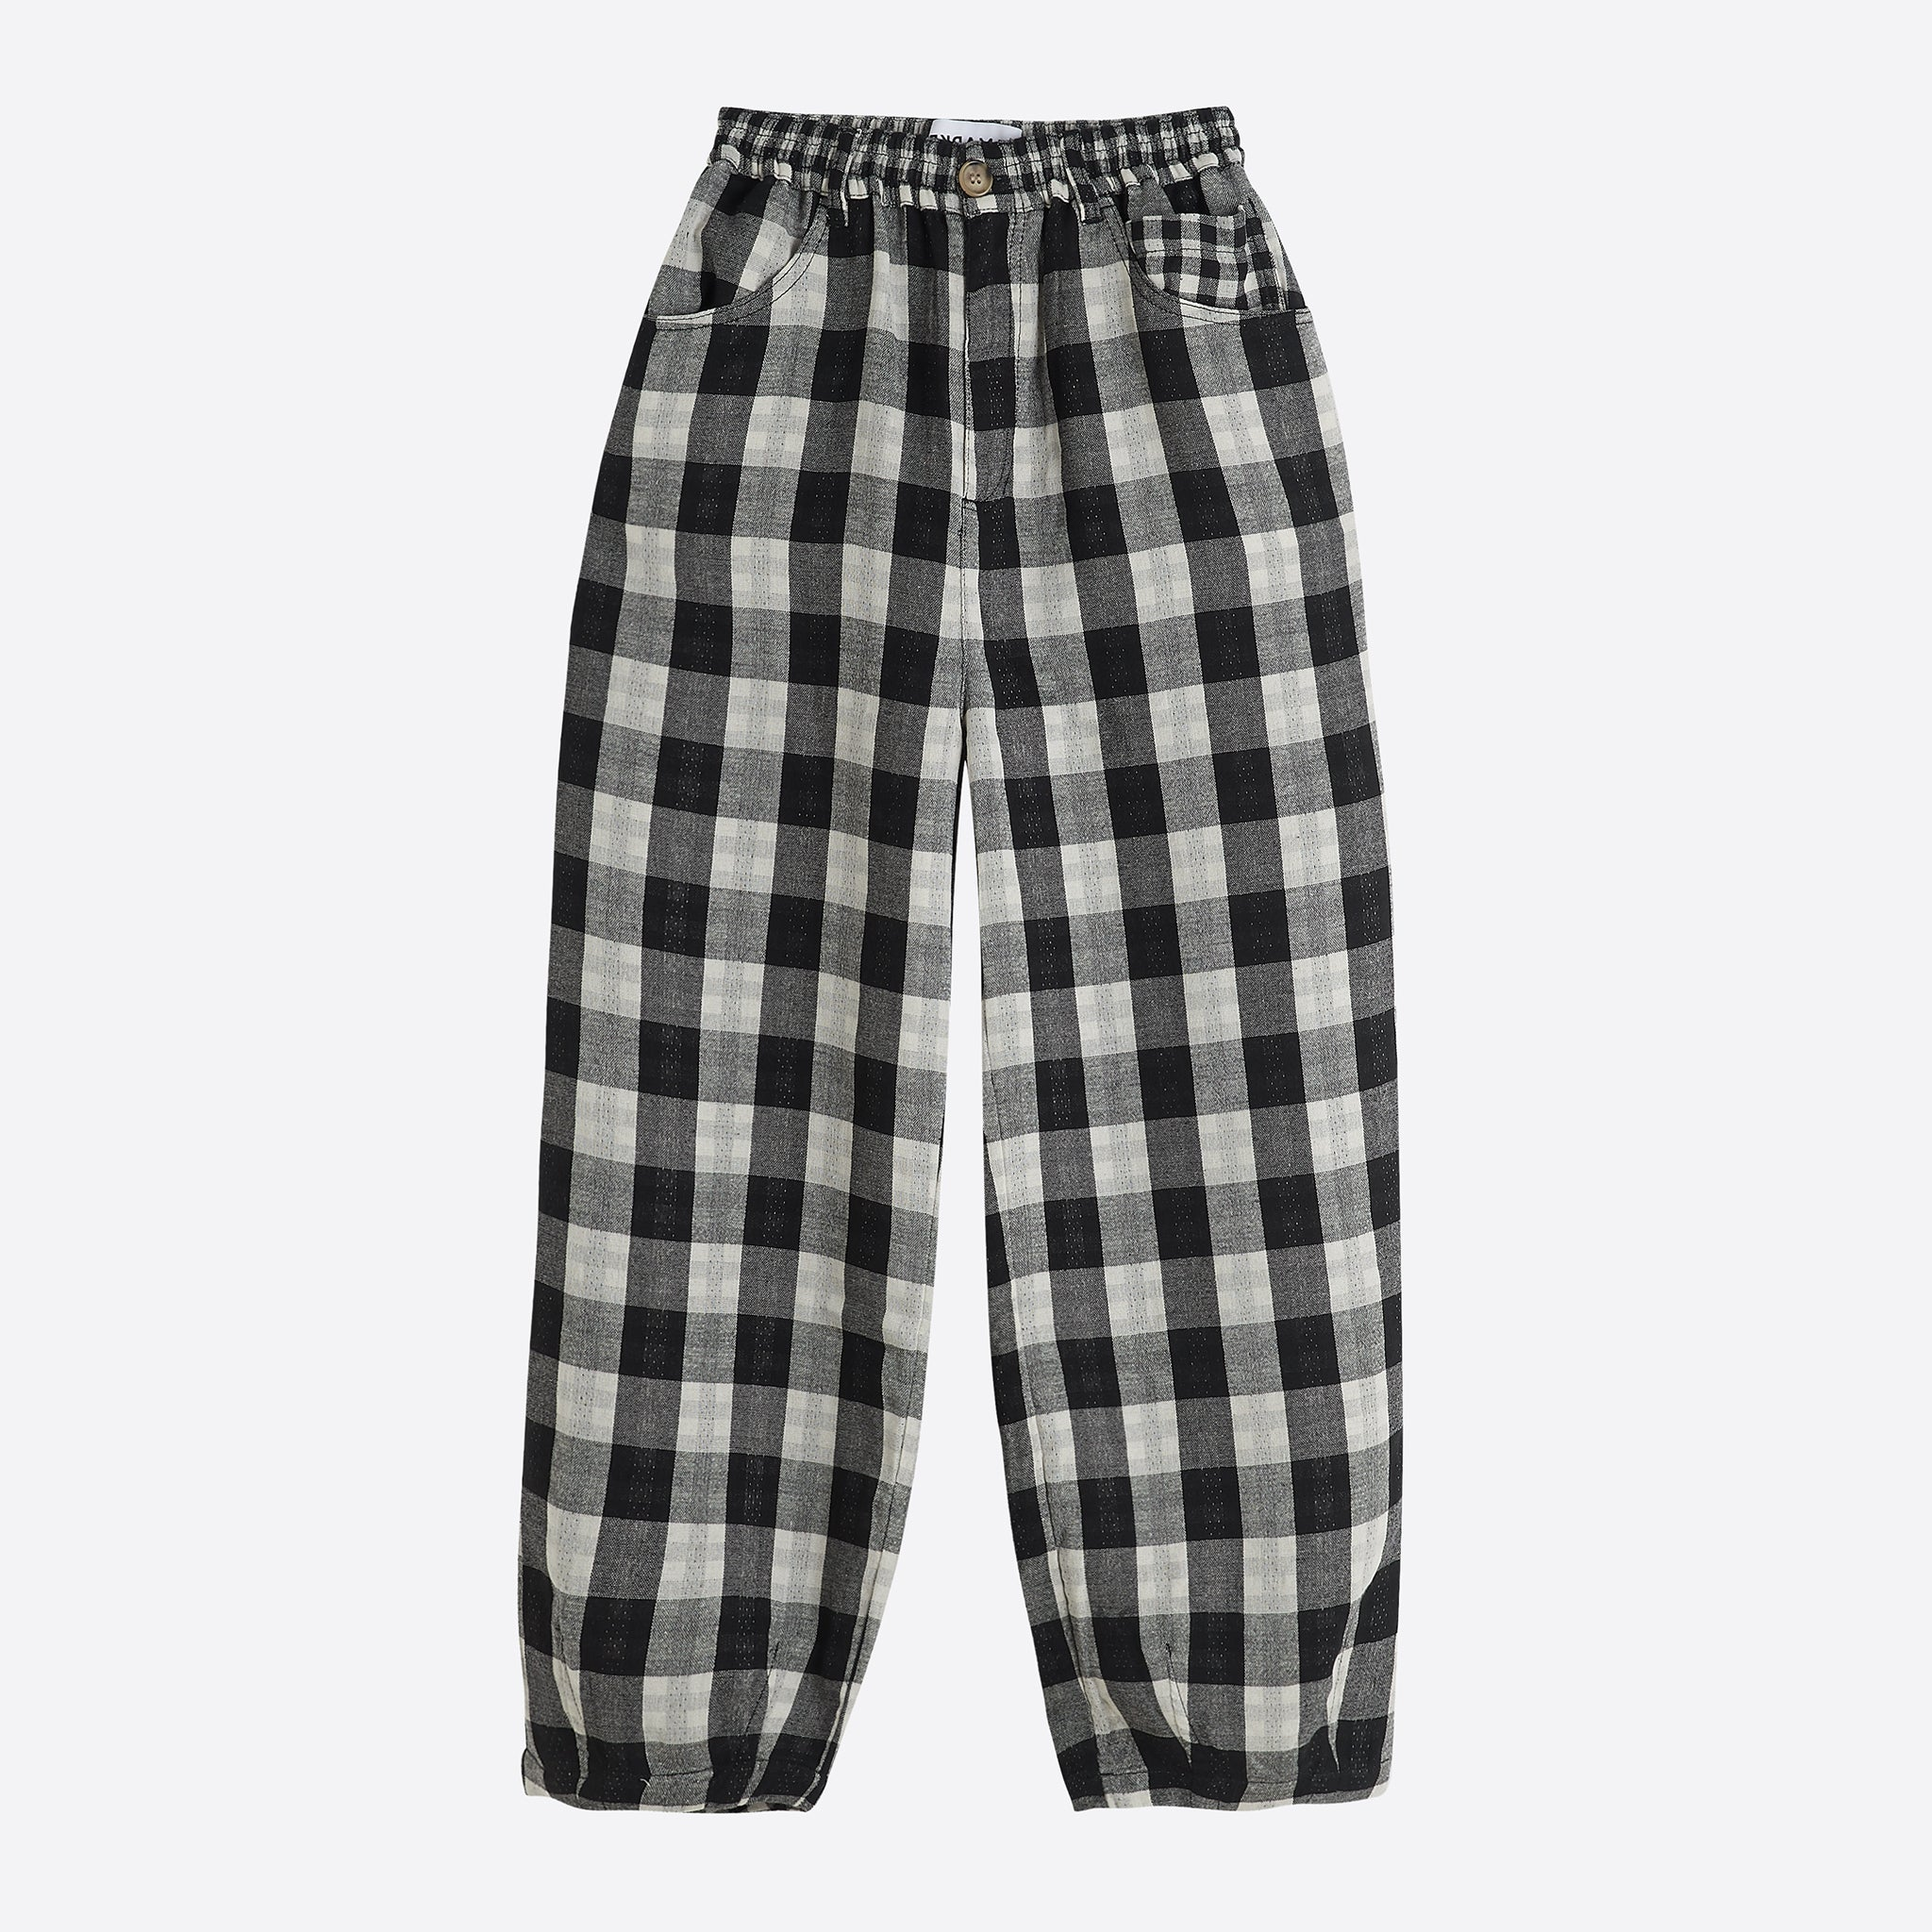 LF Markey Fat Boy Trousers in Black Check